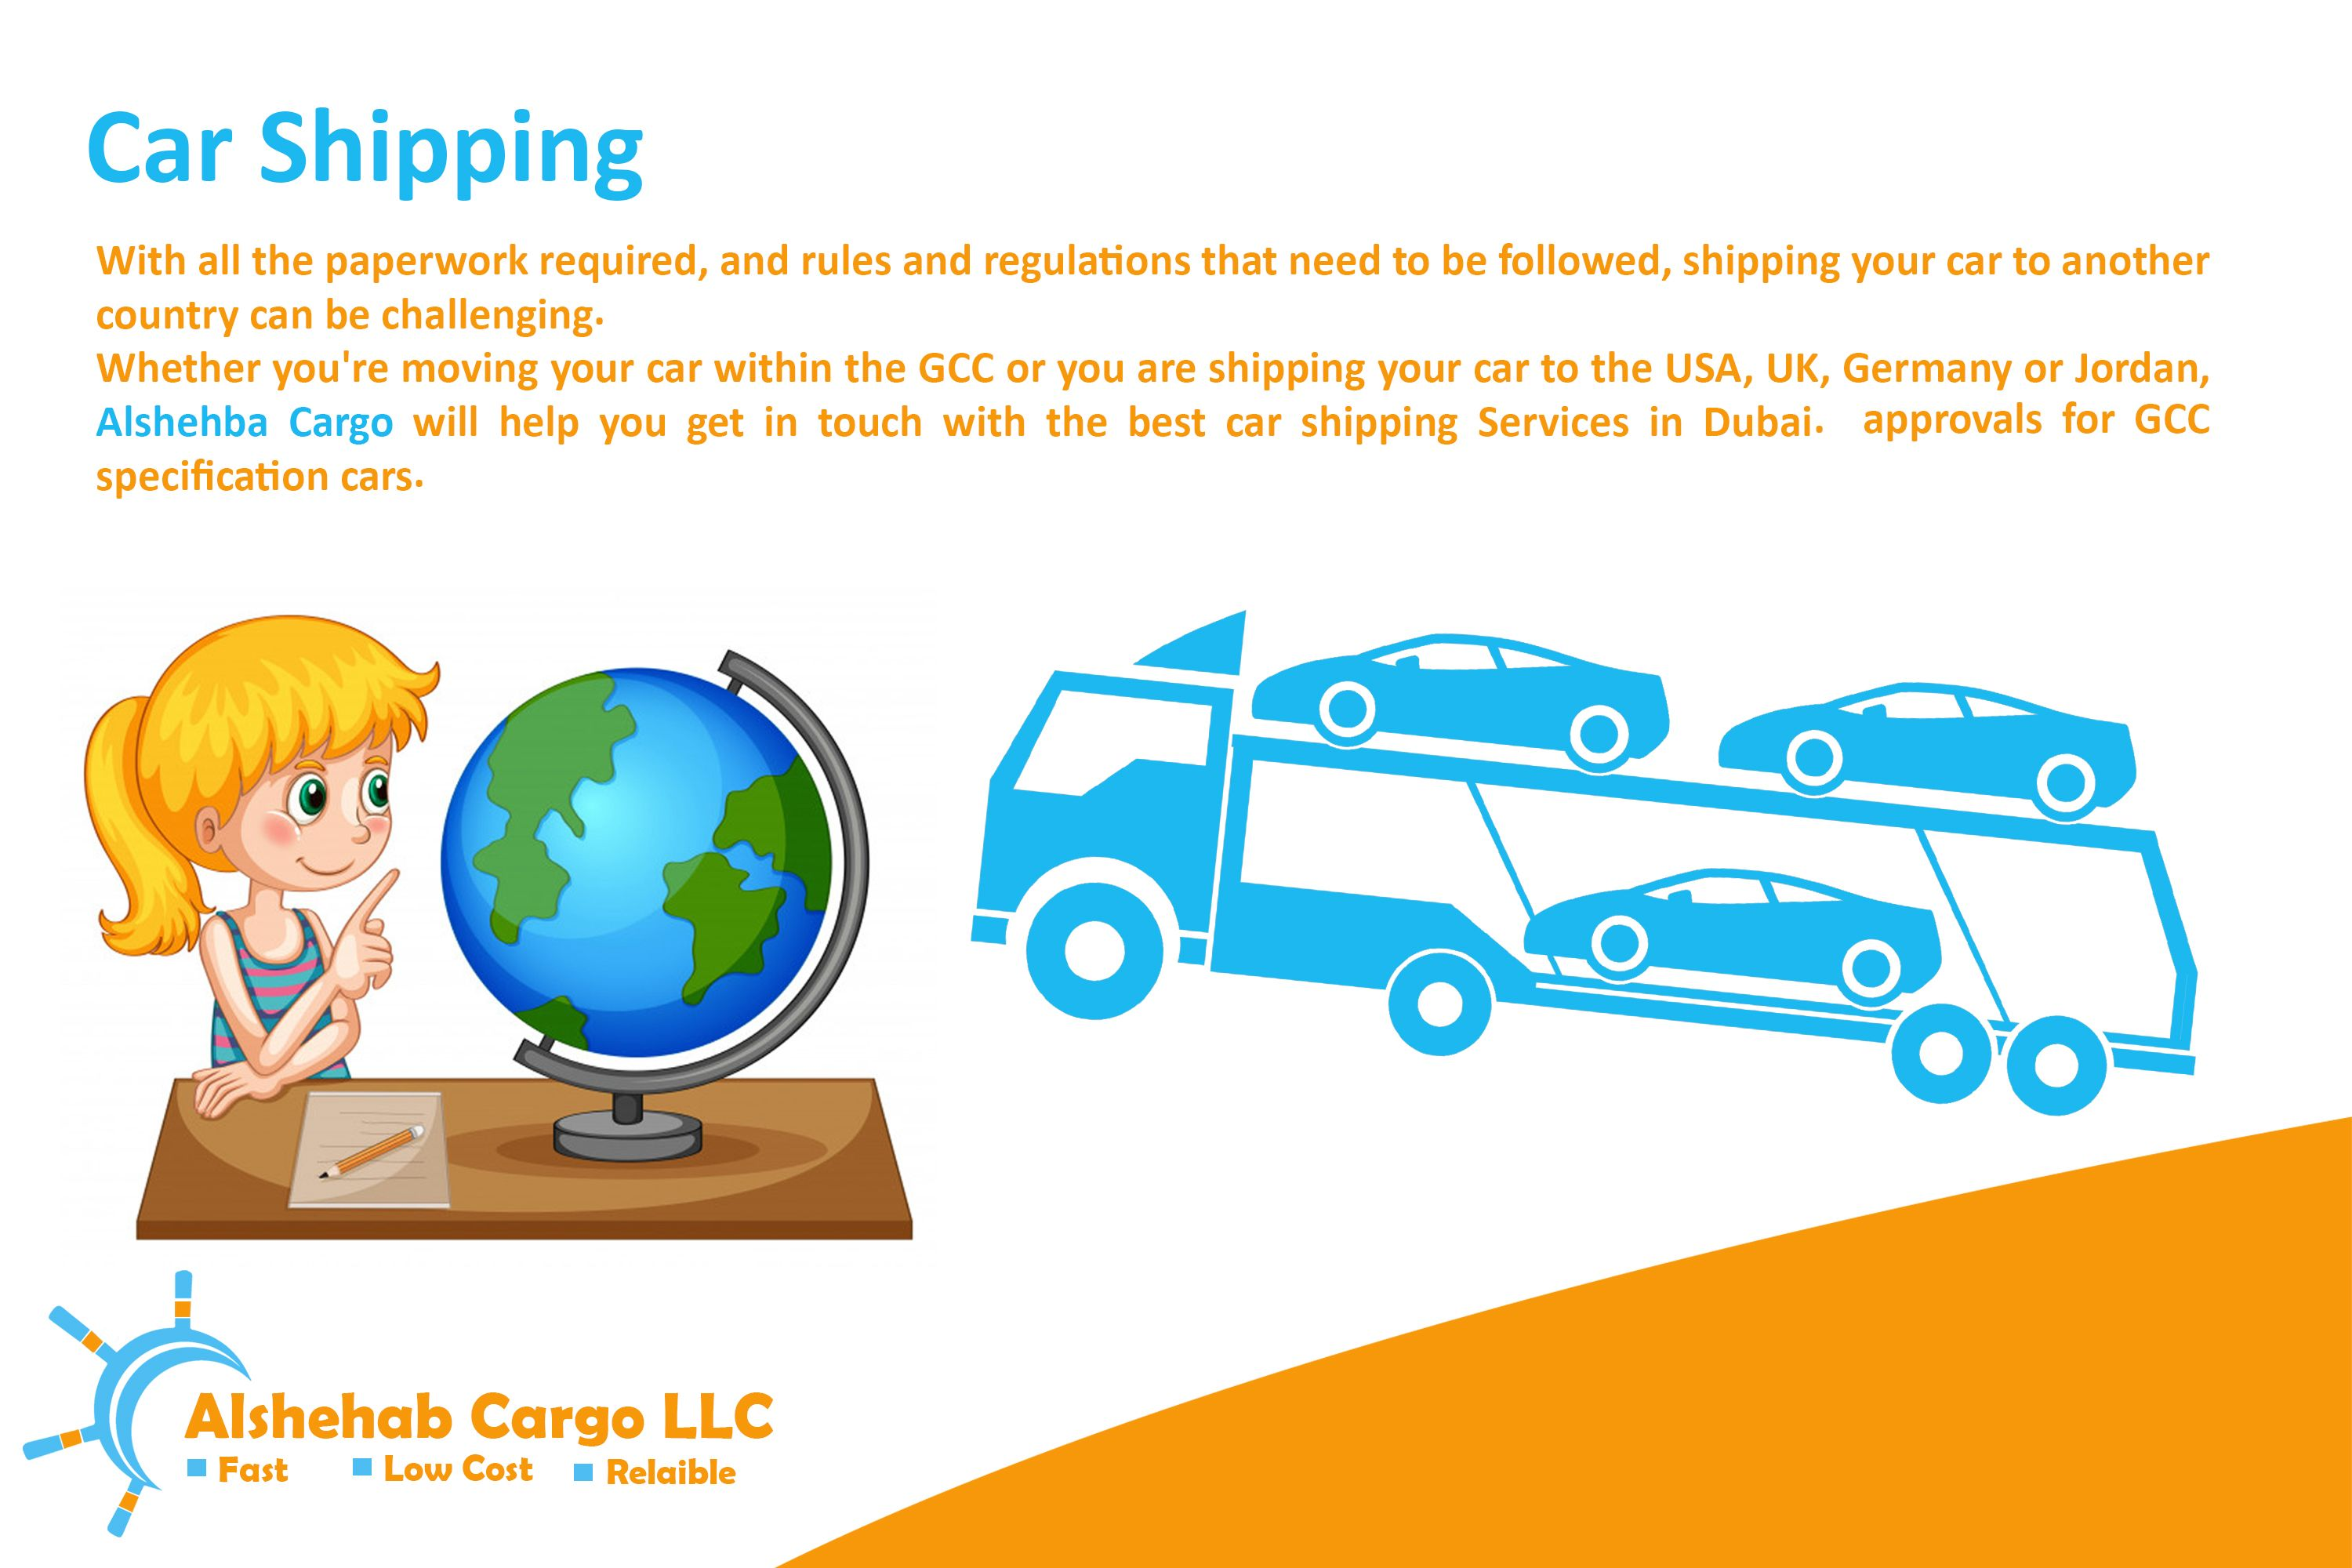 Logistics & Shipping services such as Express Cargo, Air